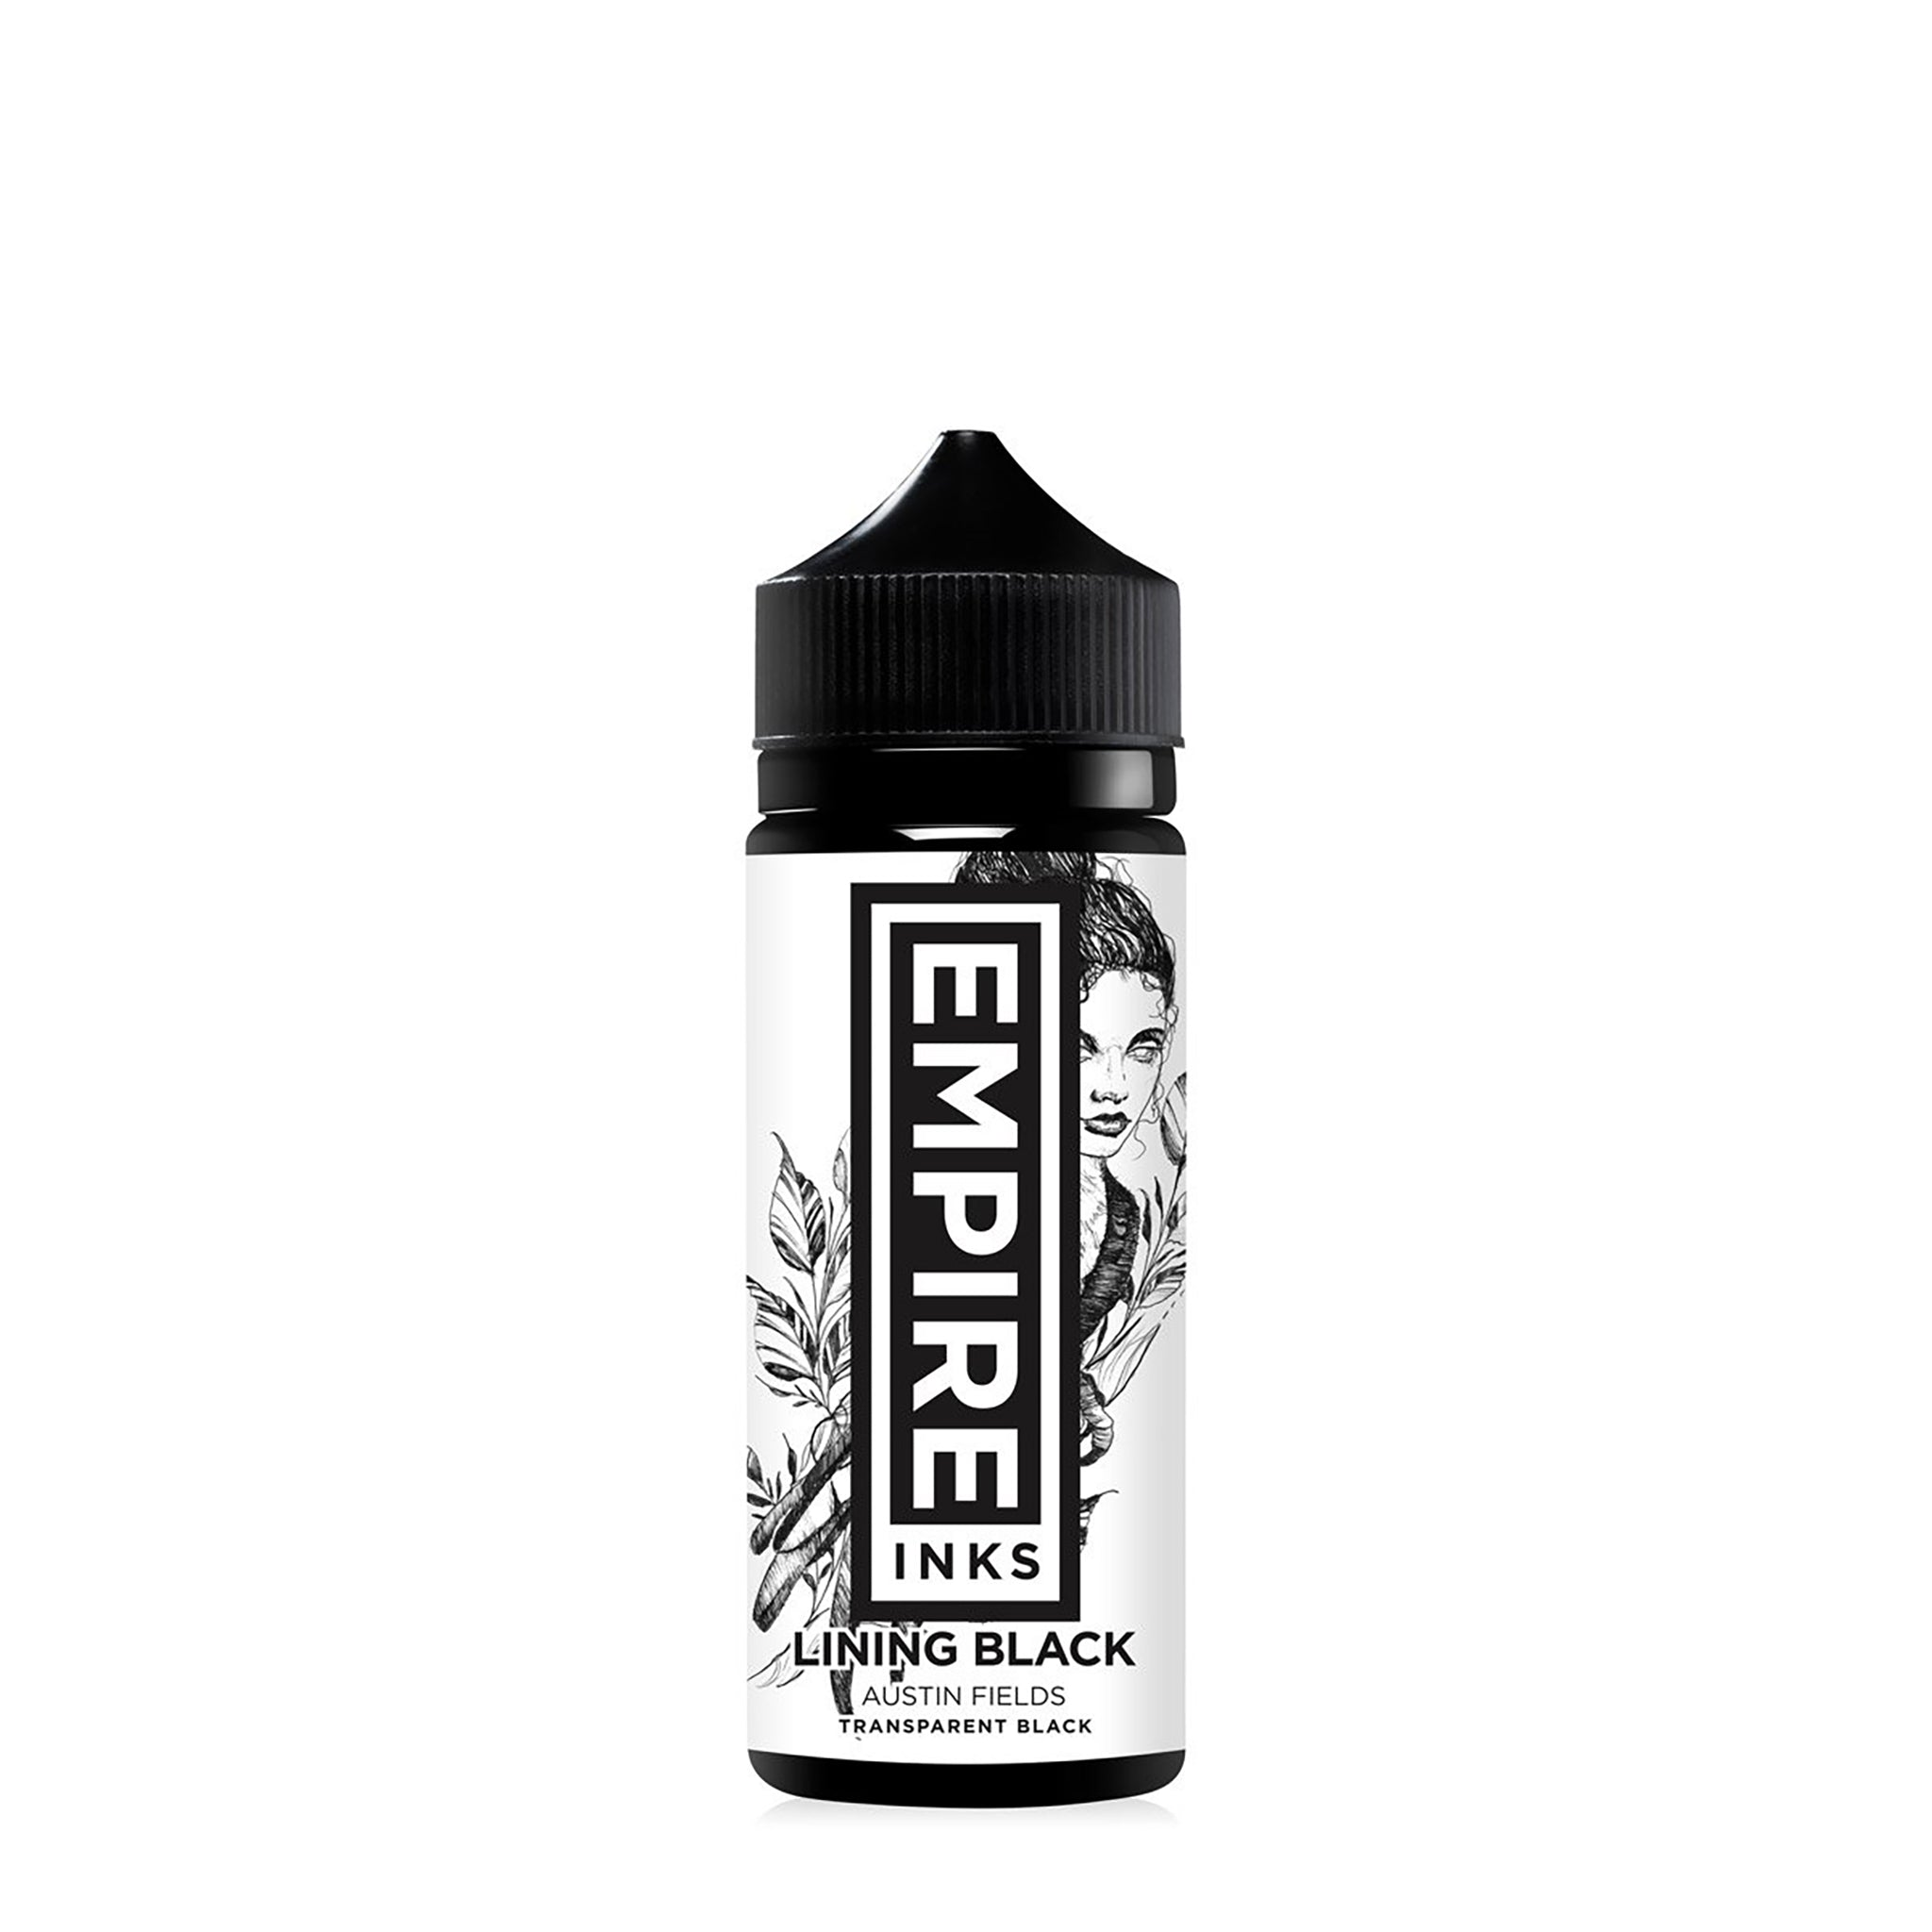 EMPIRE INKS - AUSTIN FIELDS SIGNATURE LINING BLACK, Ink, - Inktrek